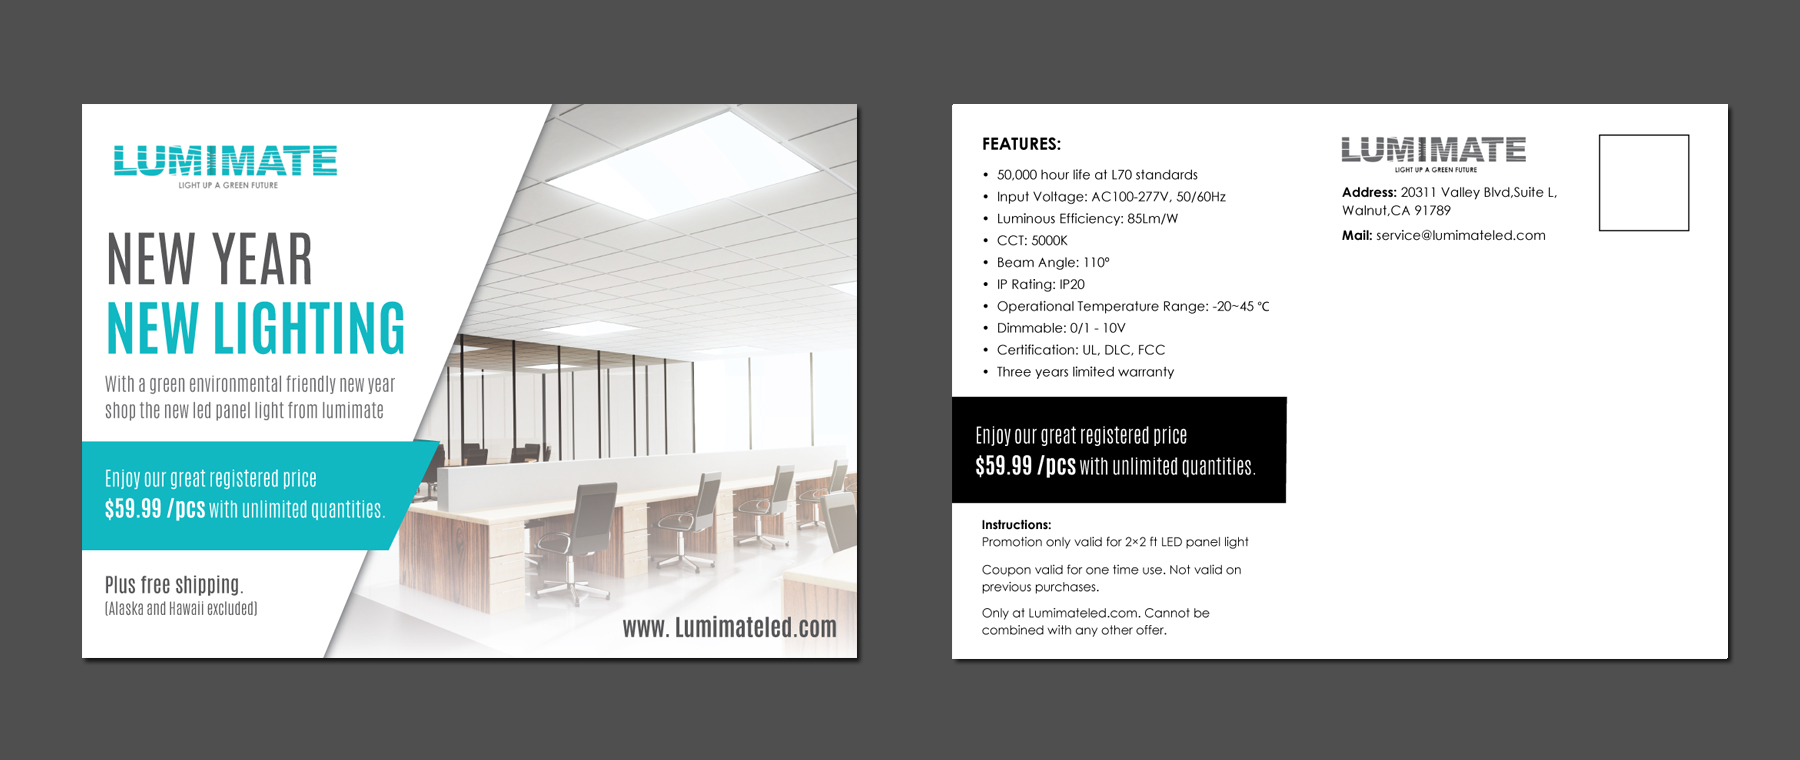 Sales Flyers for a LED Lighting Company - Consumer Electronics